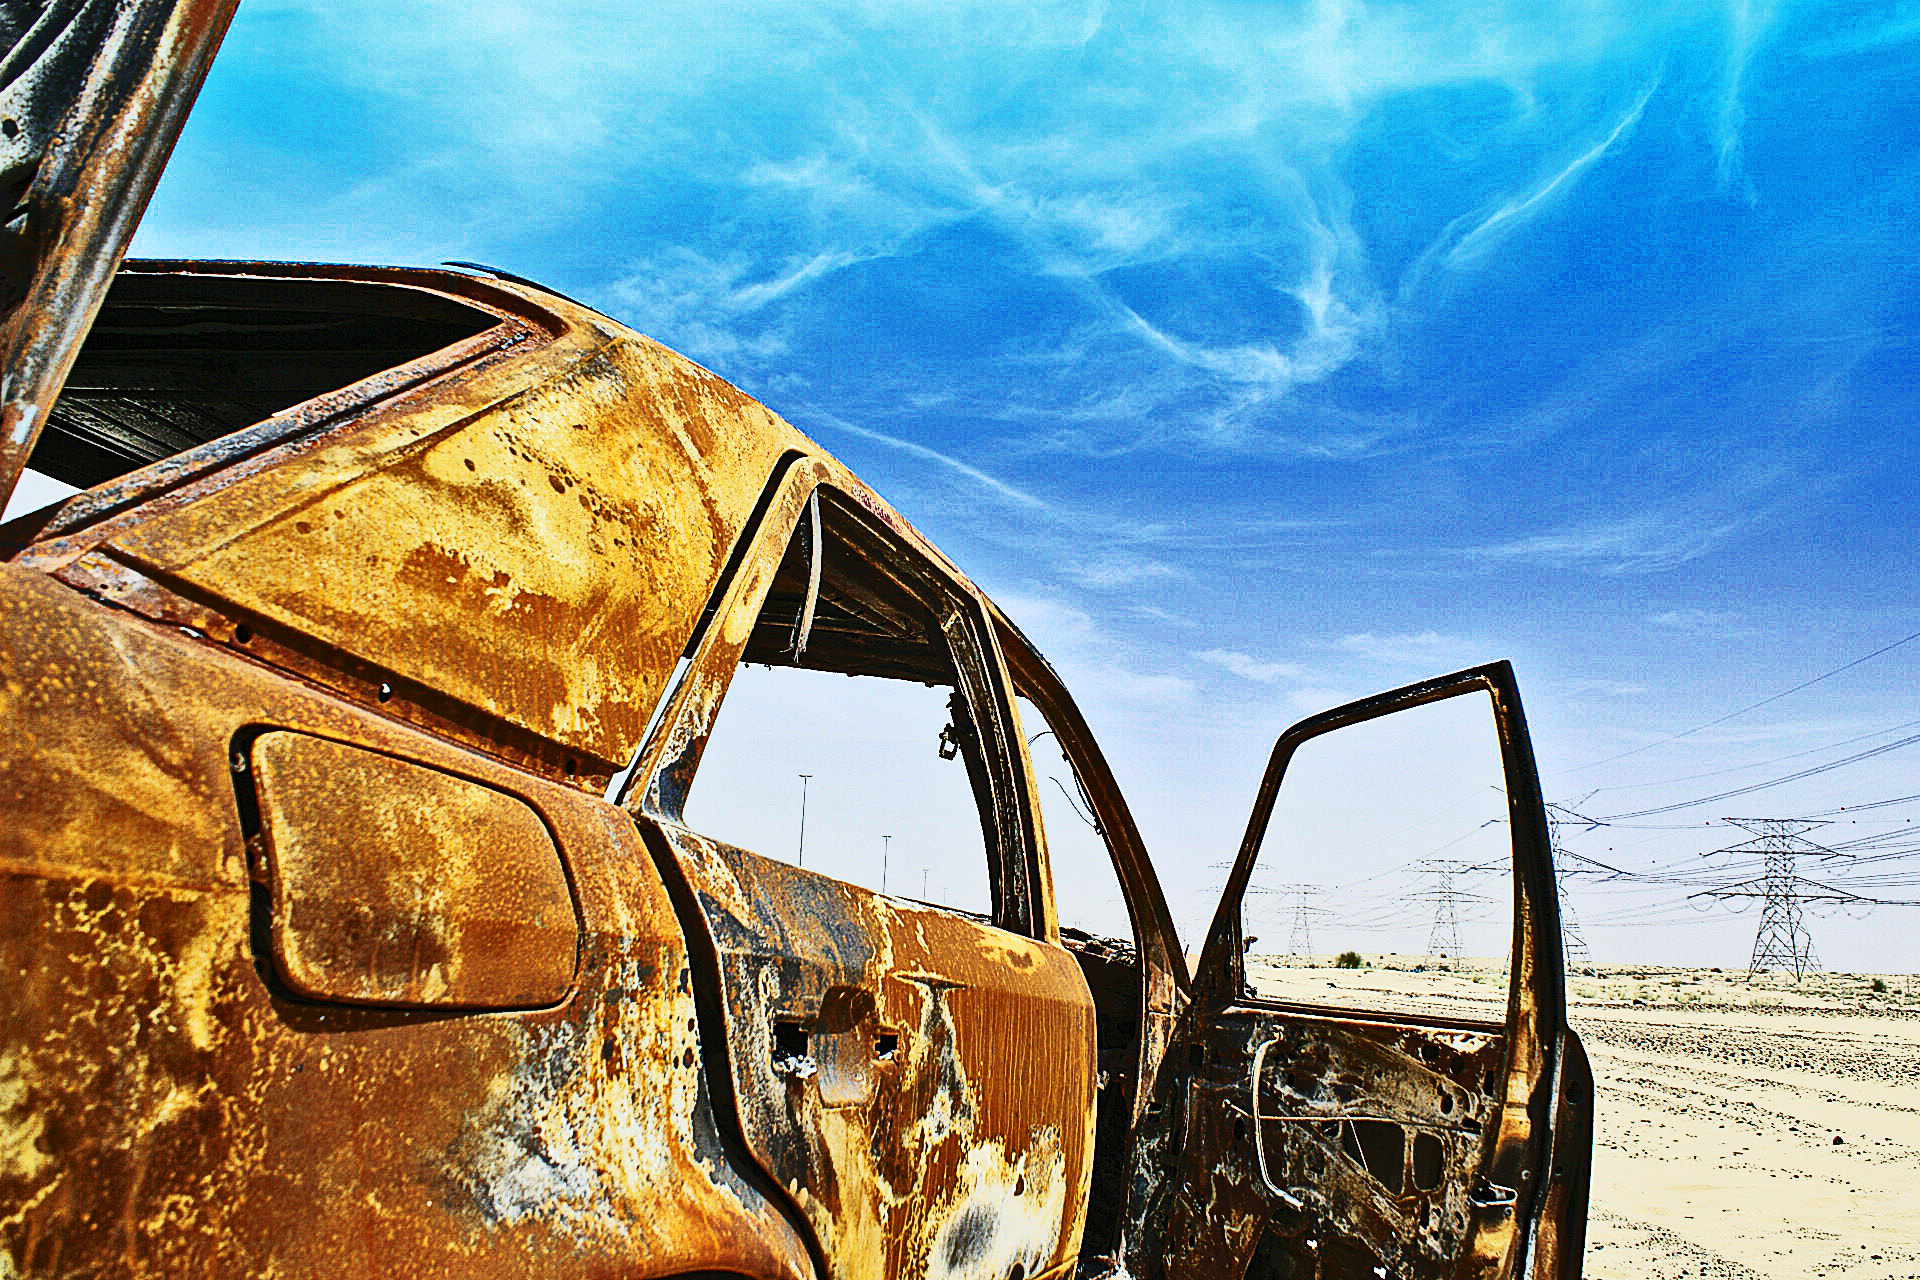 Photograph Burned car by Christos Psaras on 500px